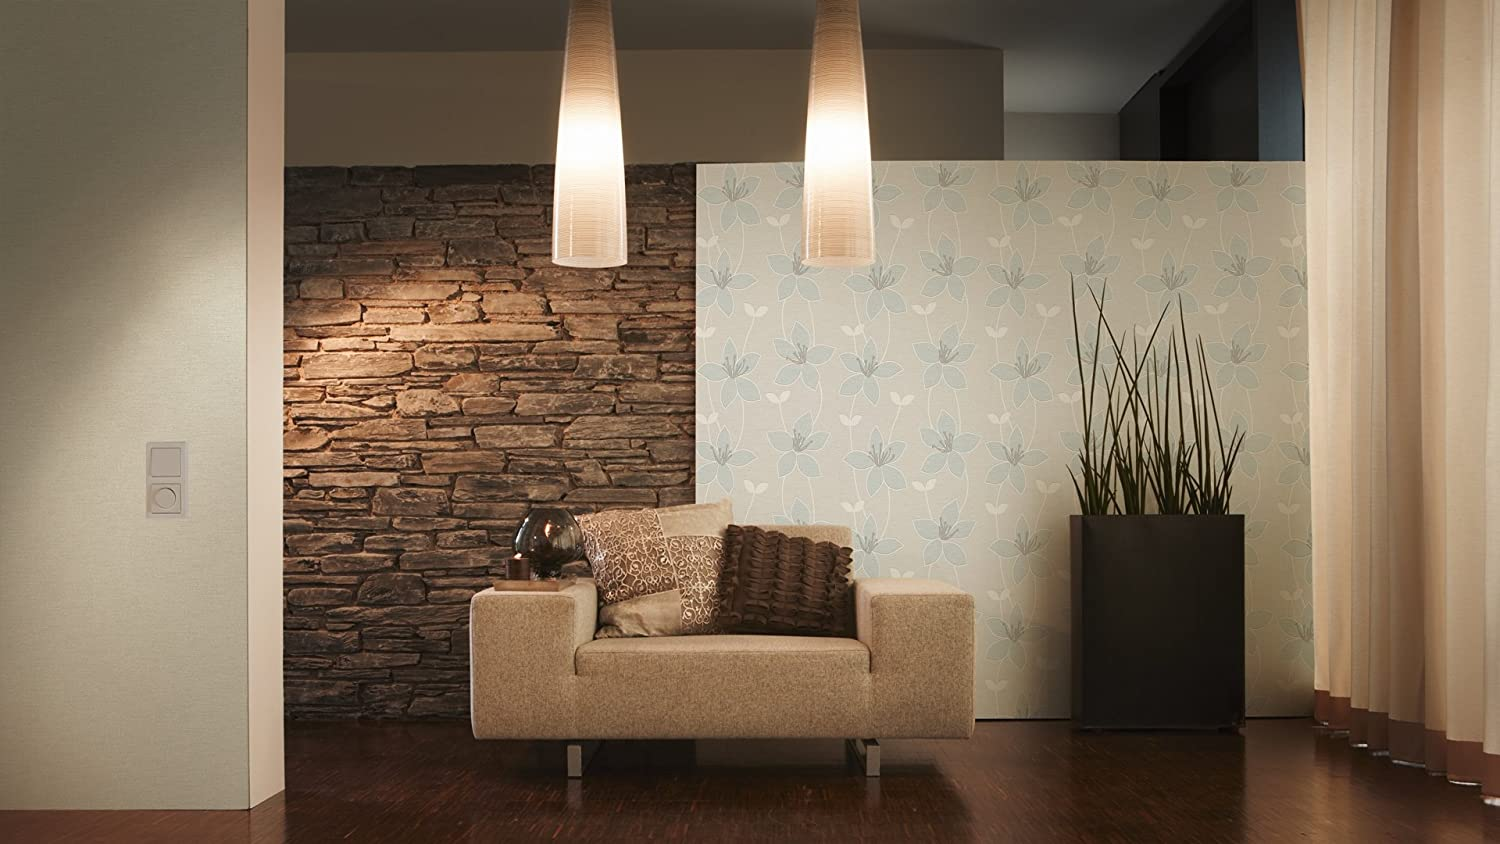 300991 A.S Cr/éation Non-Woven Wallpaper Paloma Floral Patterned Wallpaper Beige//Cream//White 300991